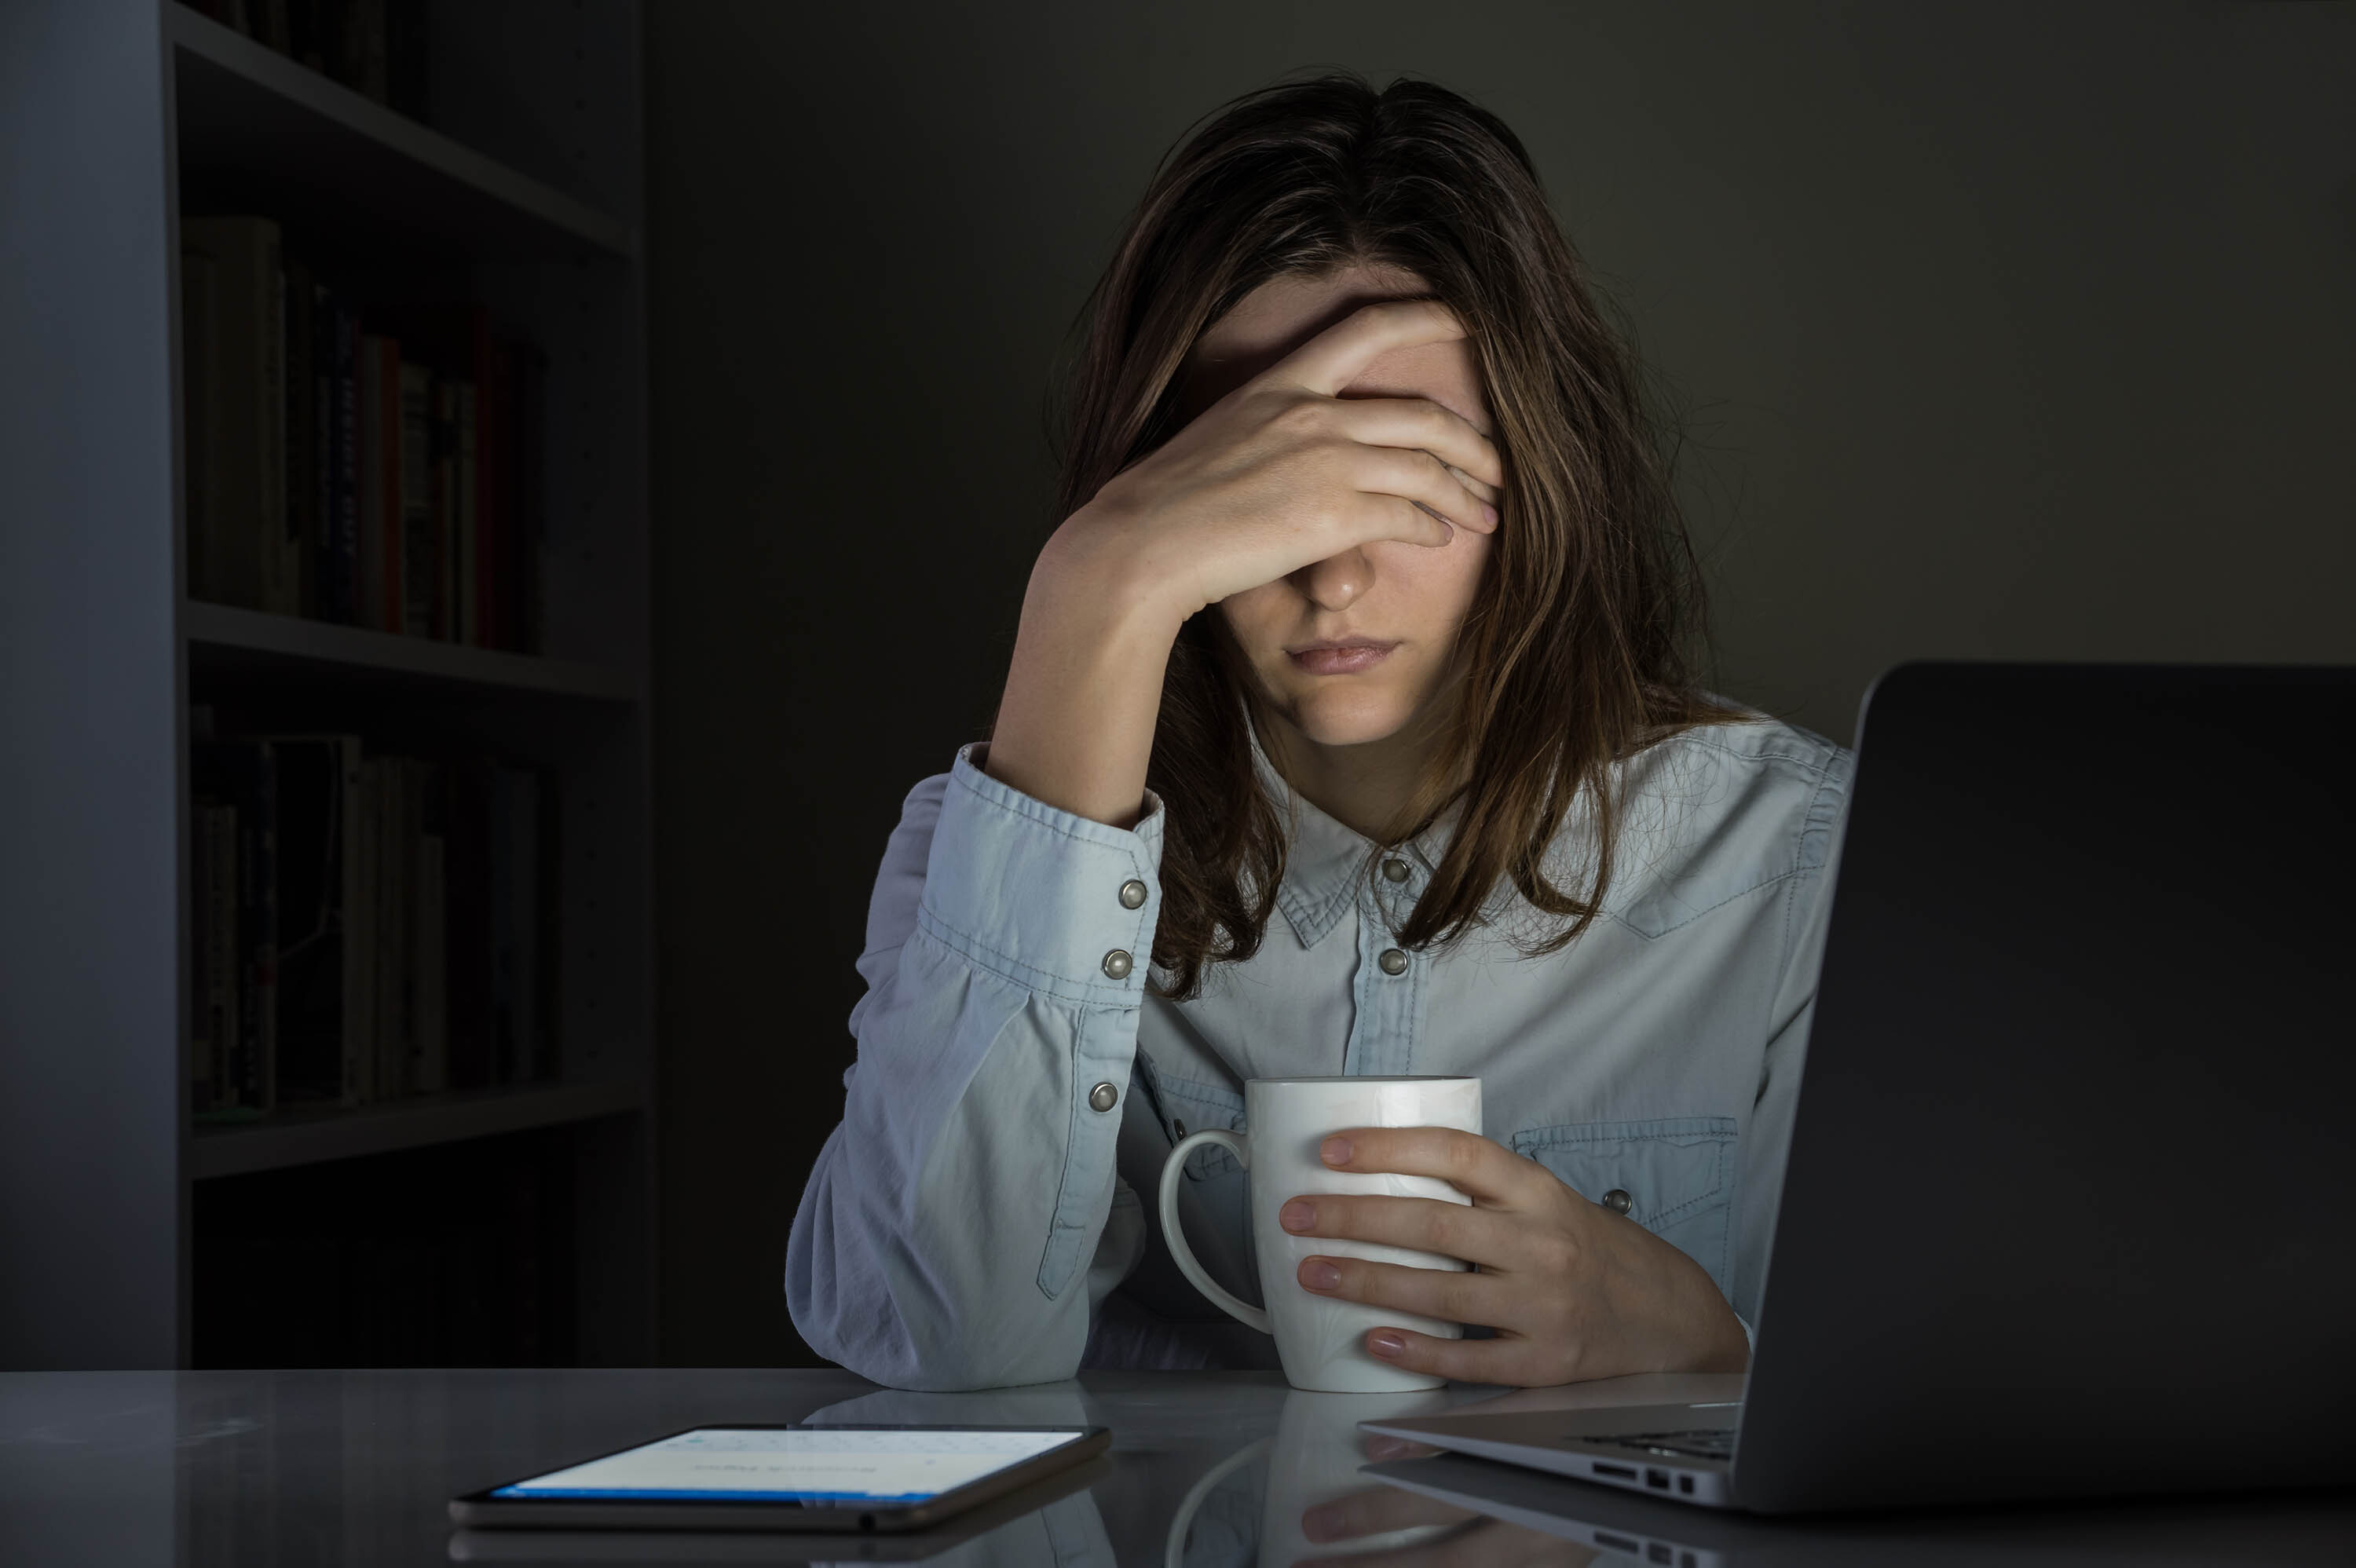 Recovering from a lack of sleep takes longer than you might think, study says